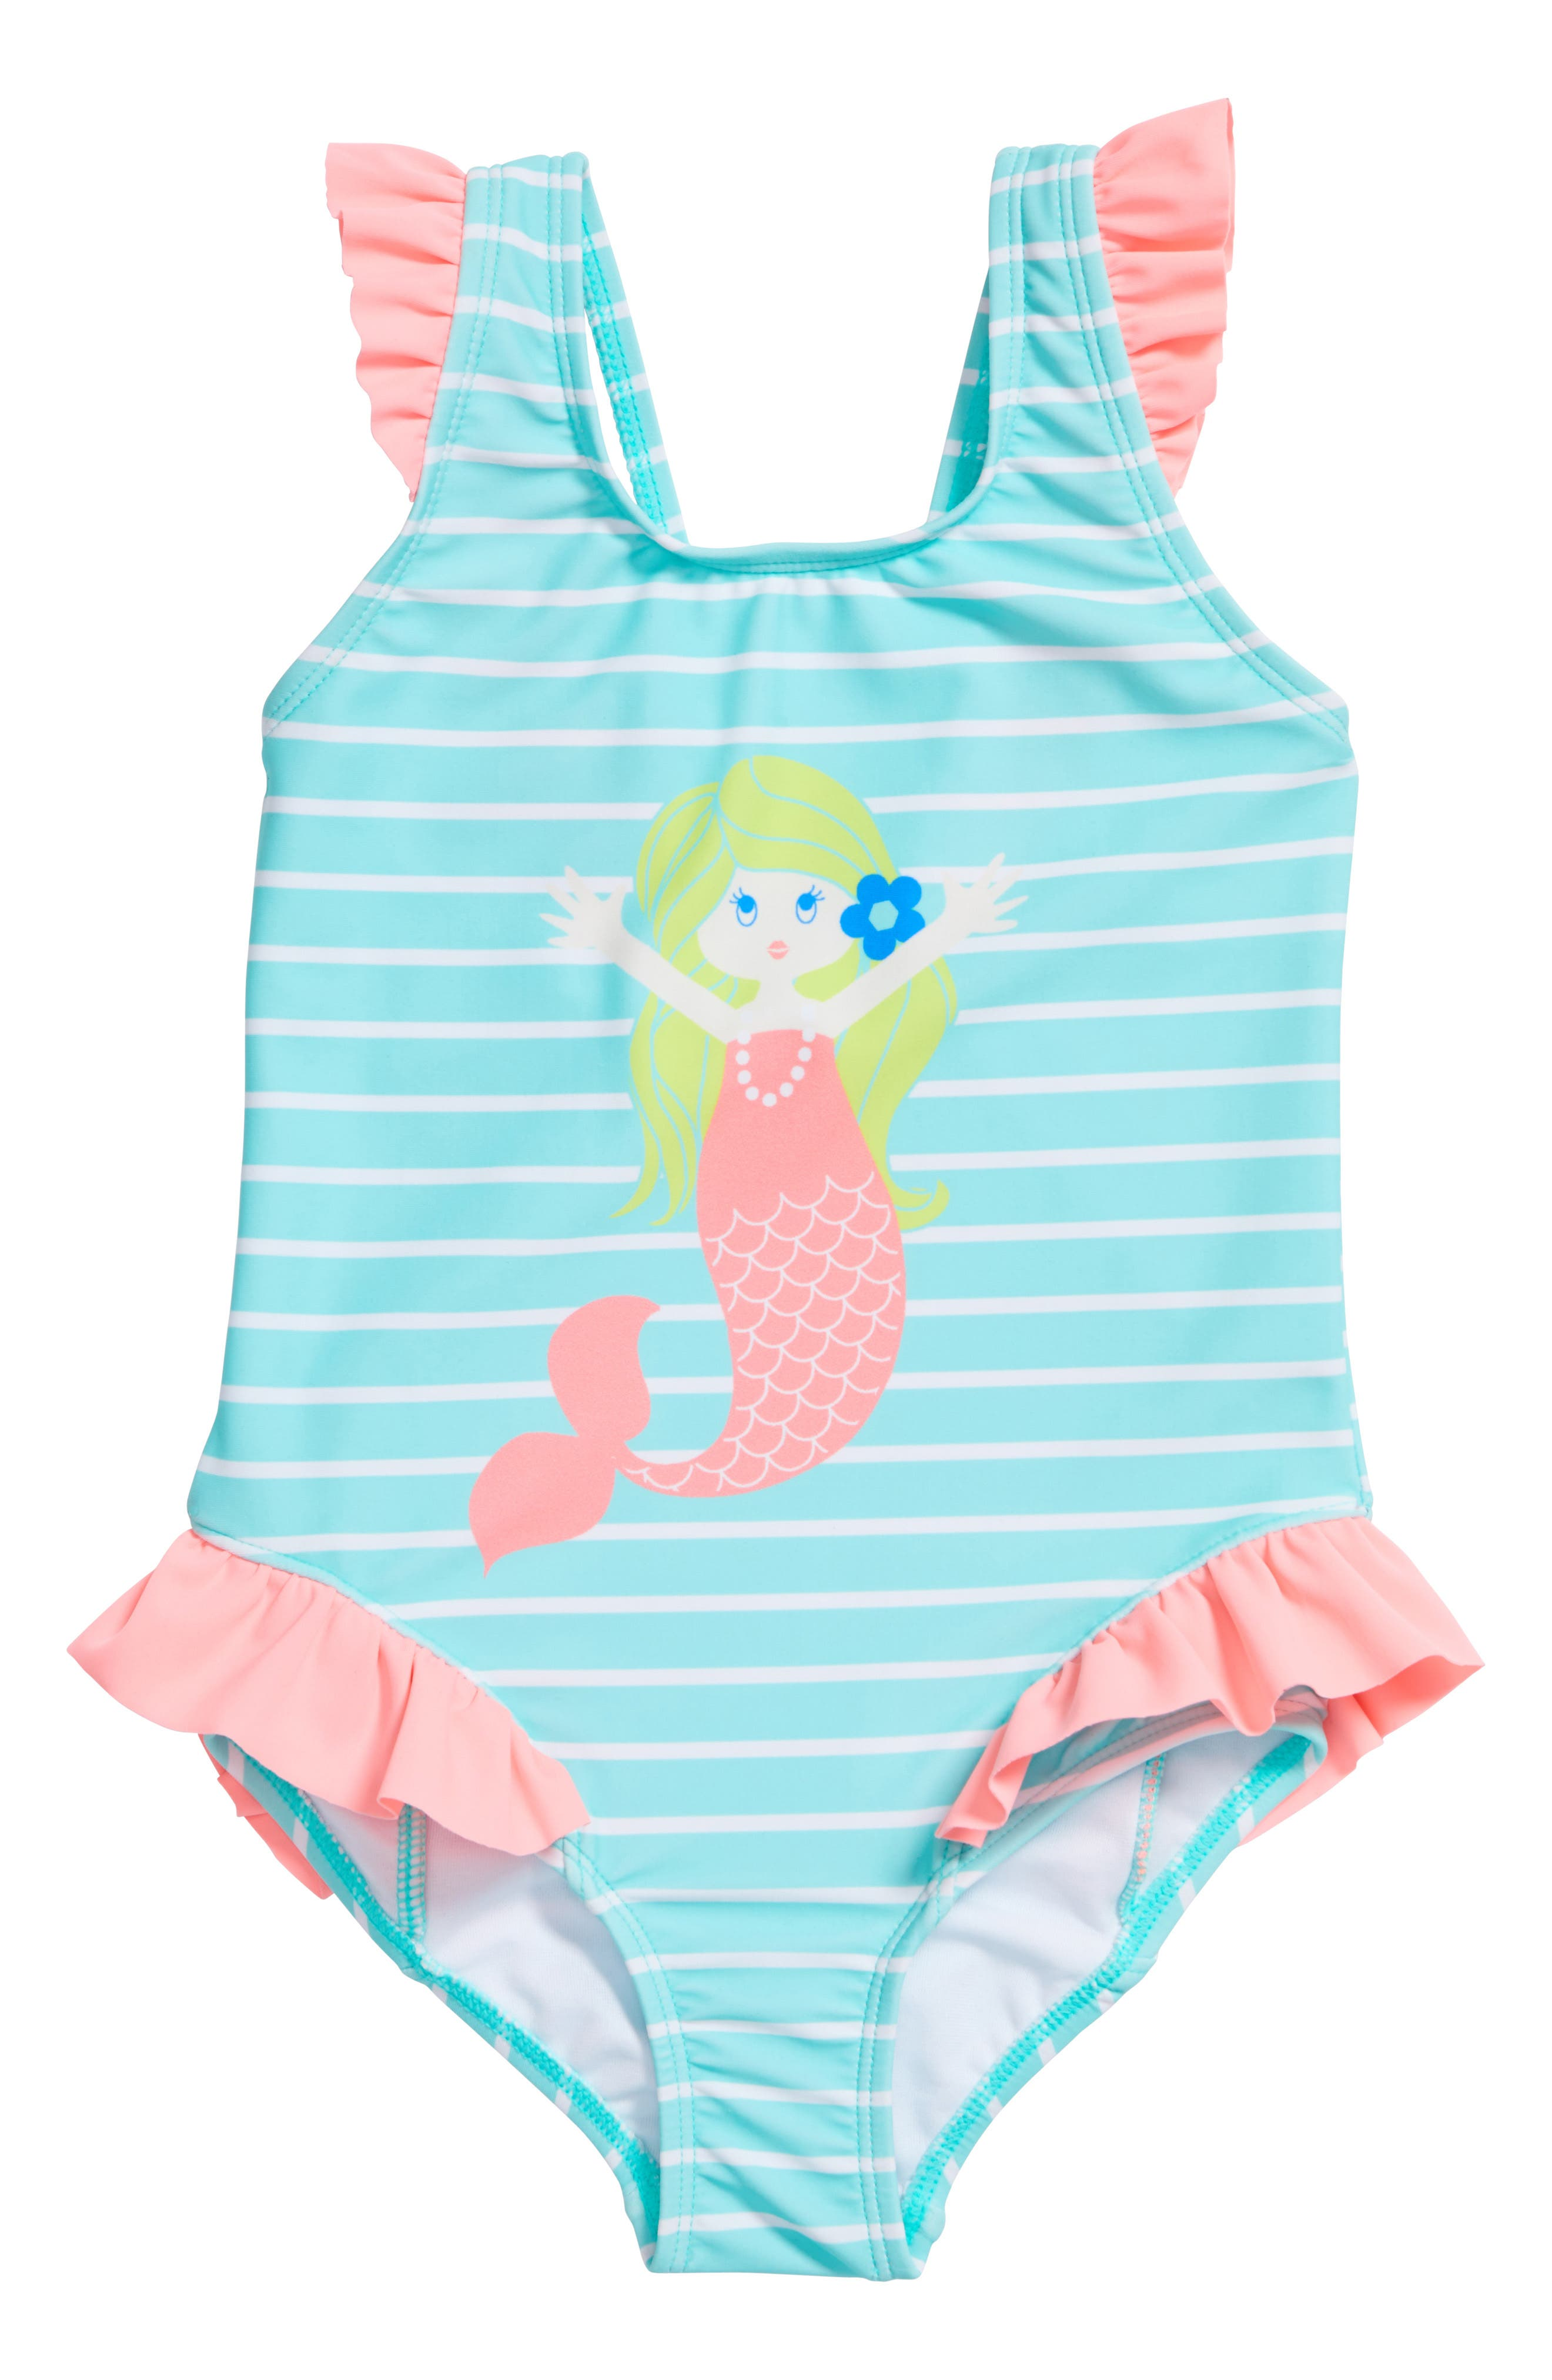 All Is Love One-Piece Swimsuit,                         Main,                         color, Seafoam/ Pink